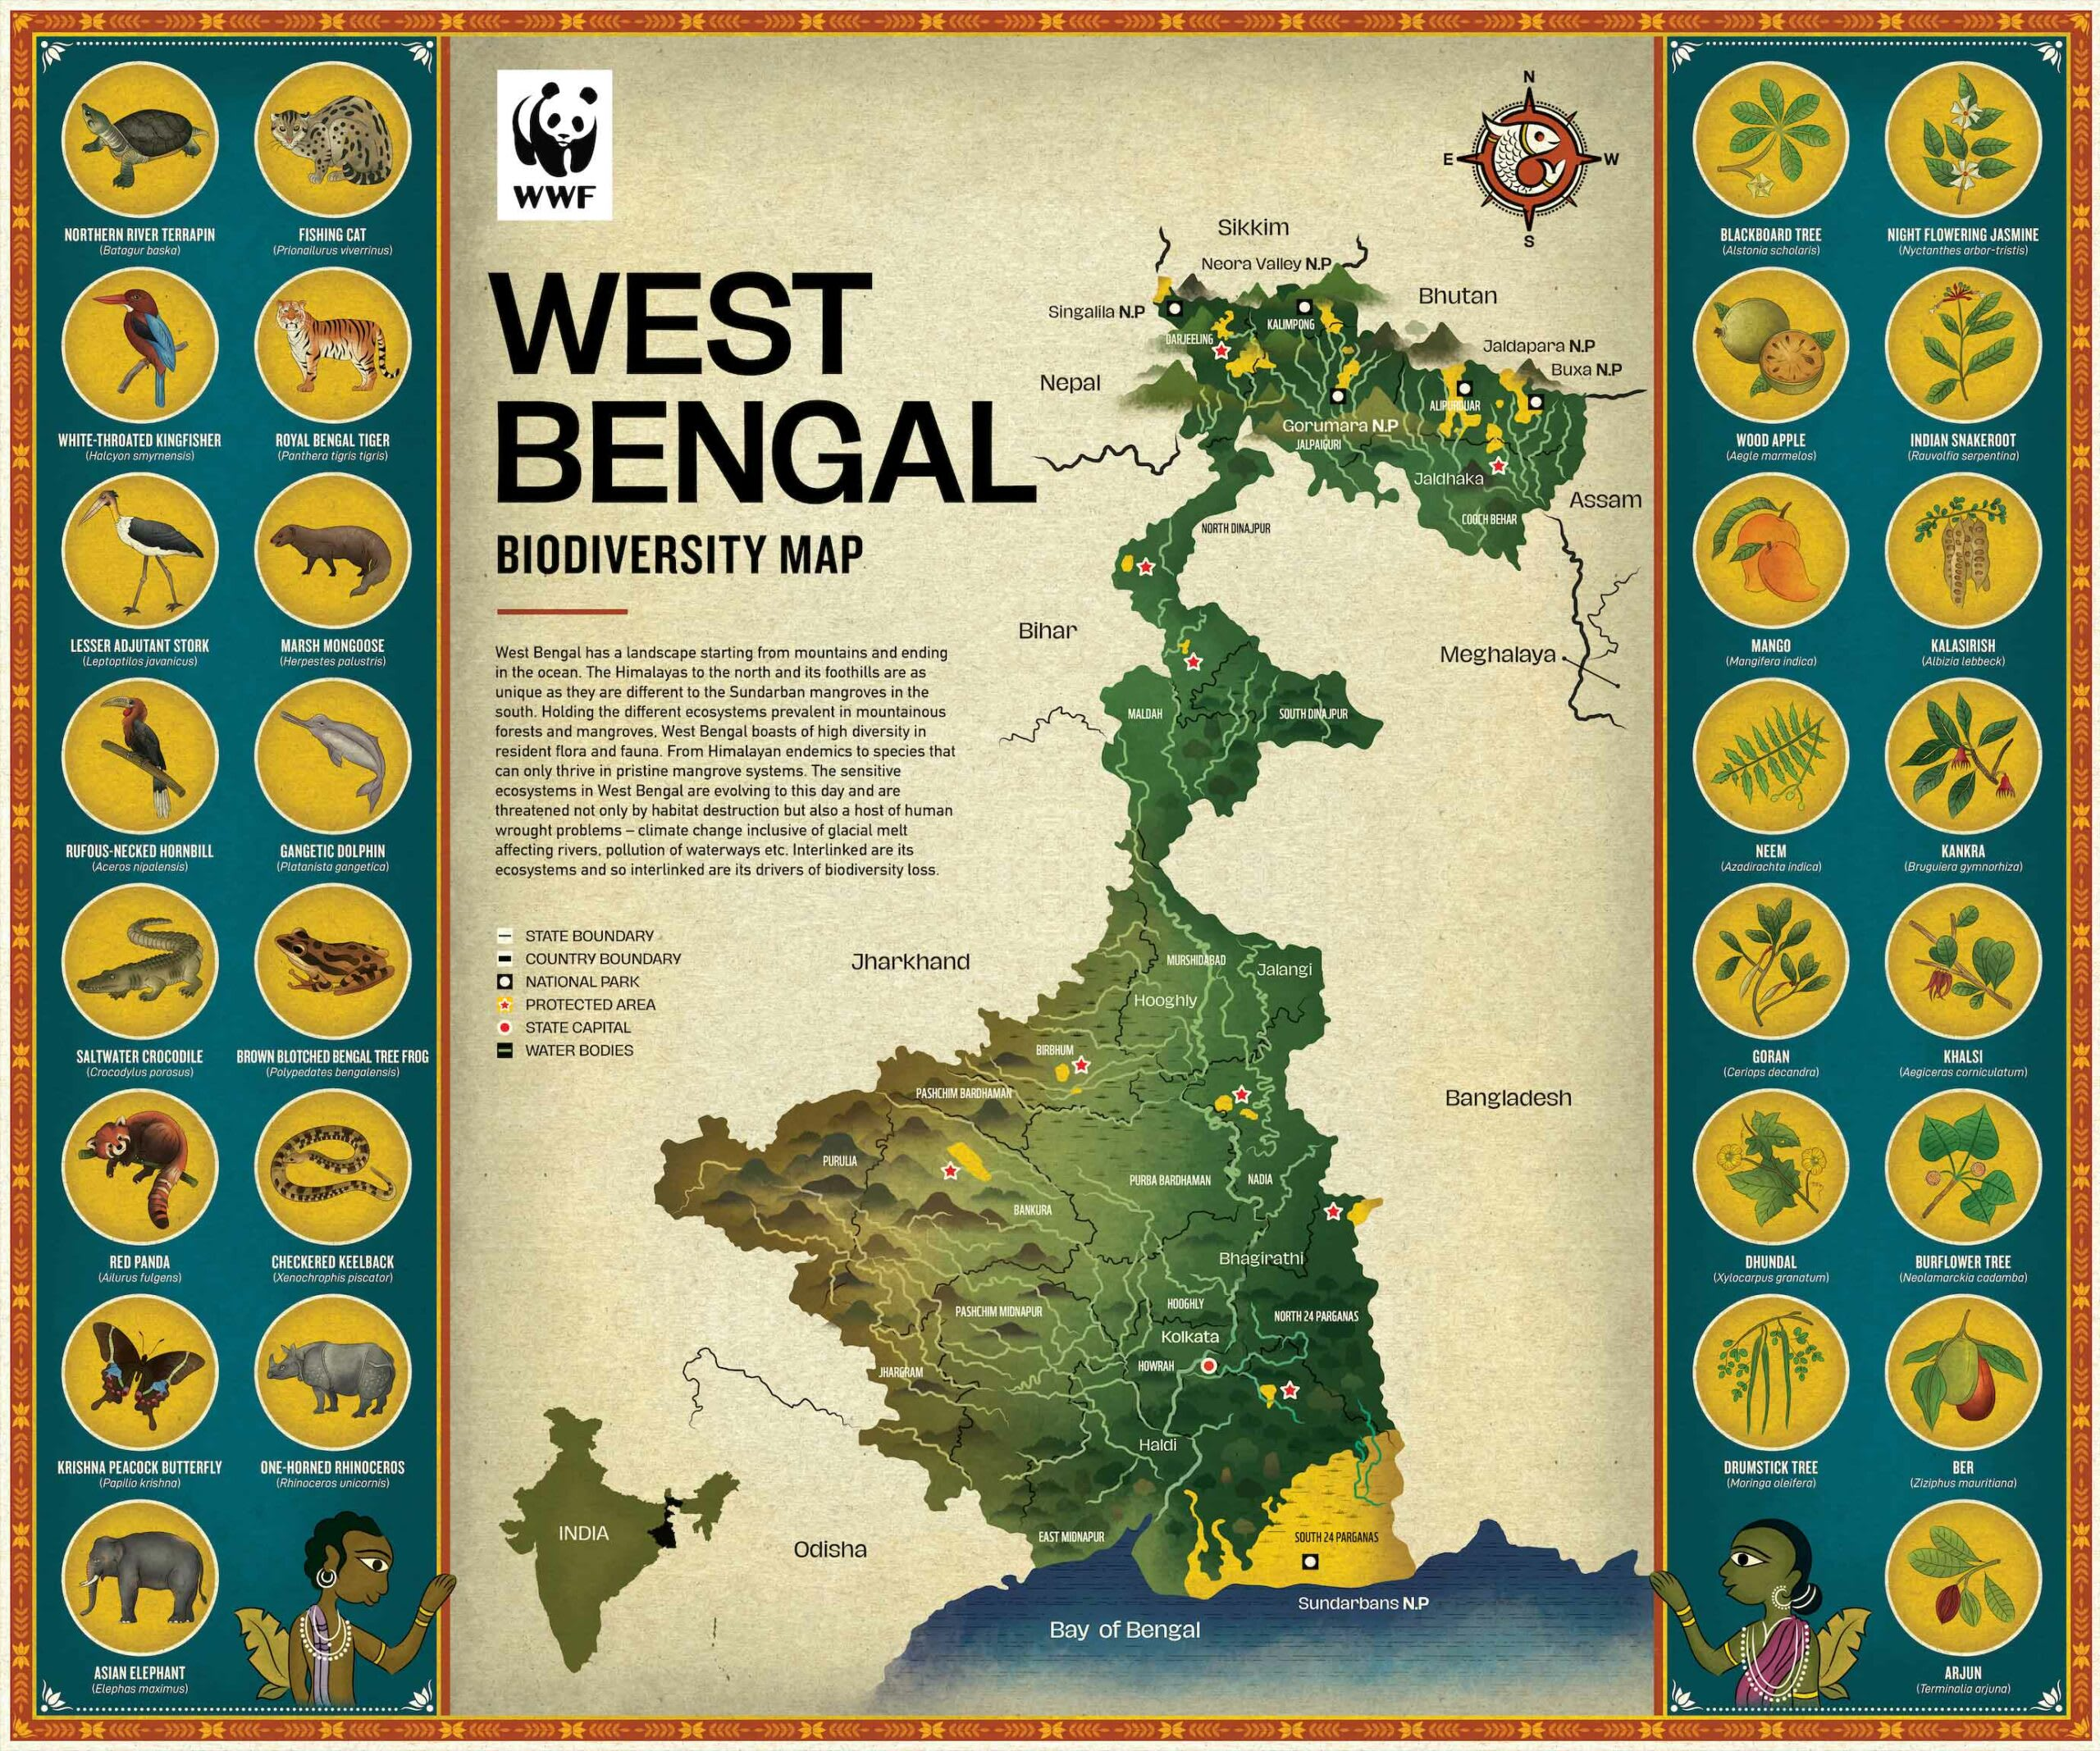 (Top) This detailed map of Odisha, Shaw's home state, reflects his intimate knowledge of the region's flora, fauna, and tribal heritage. (Above) A recently released map of West Bengal.  Cover Photo: Sudarshan Shaw, artist and naturalist from Odisha. Cover Photo Courtesy: Sudarshan Shaw